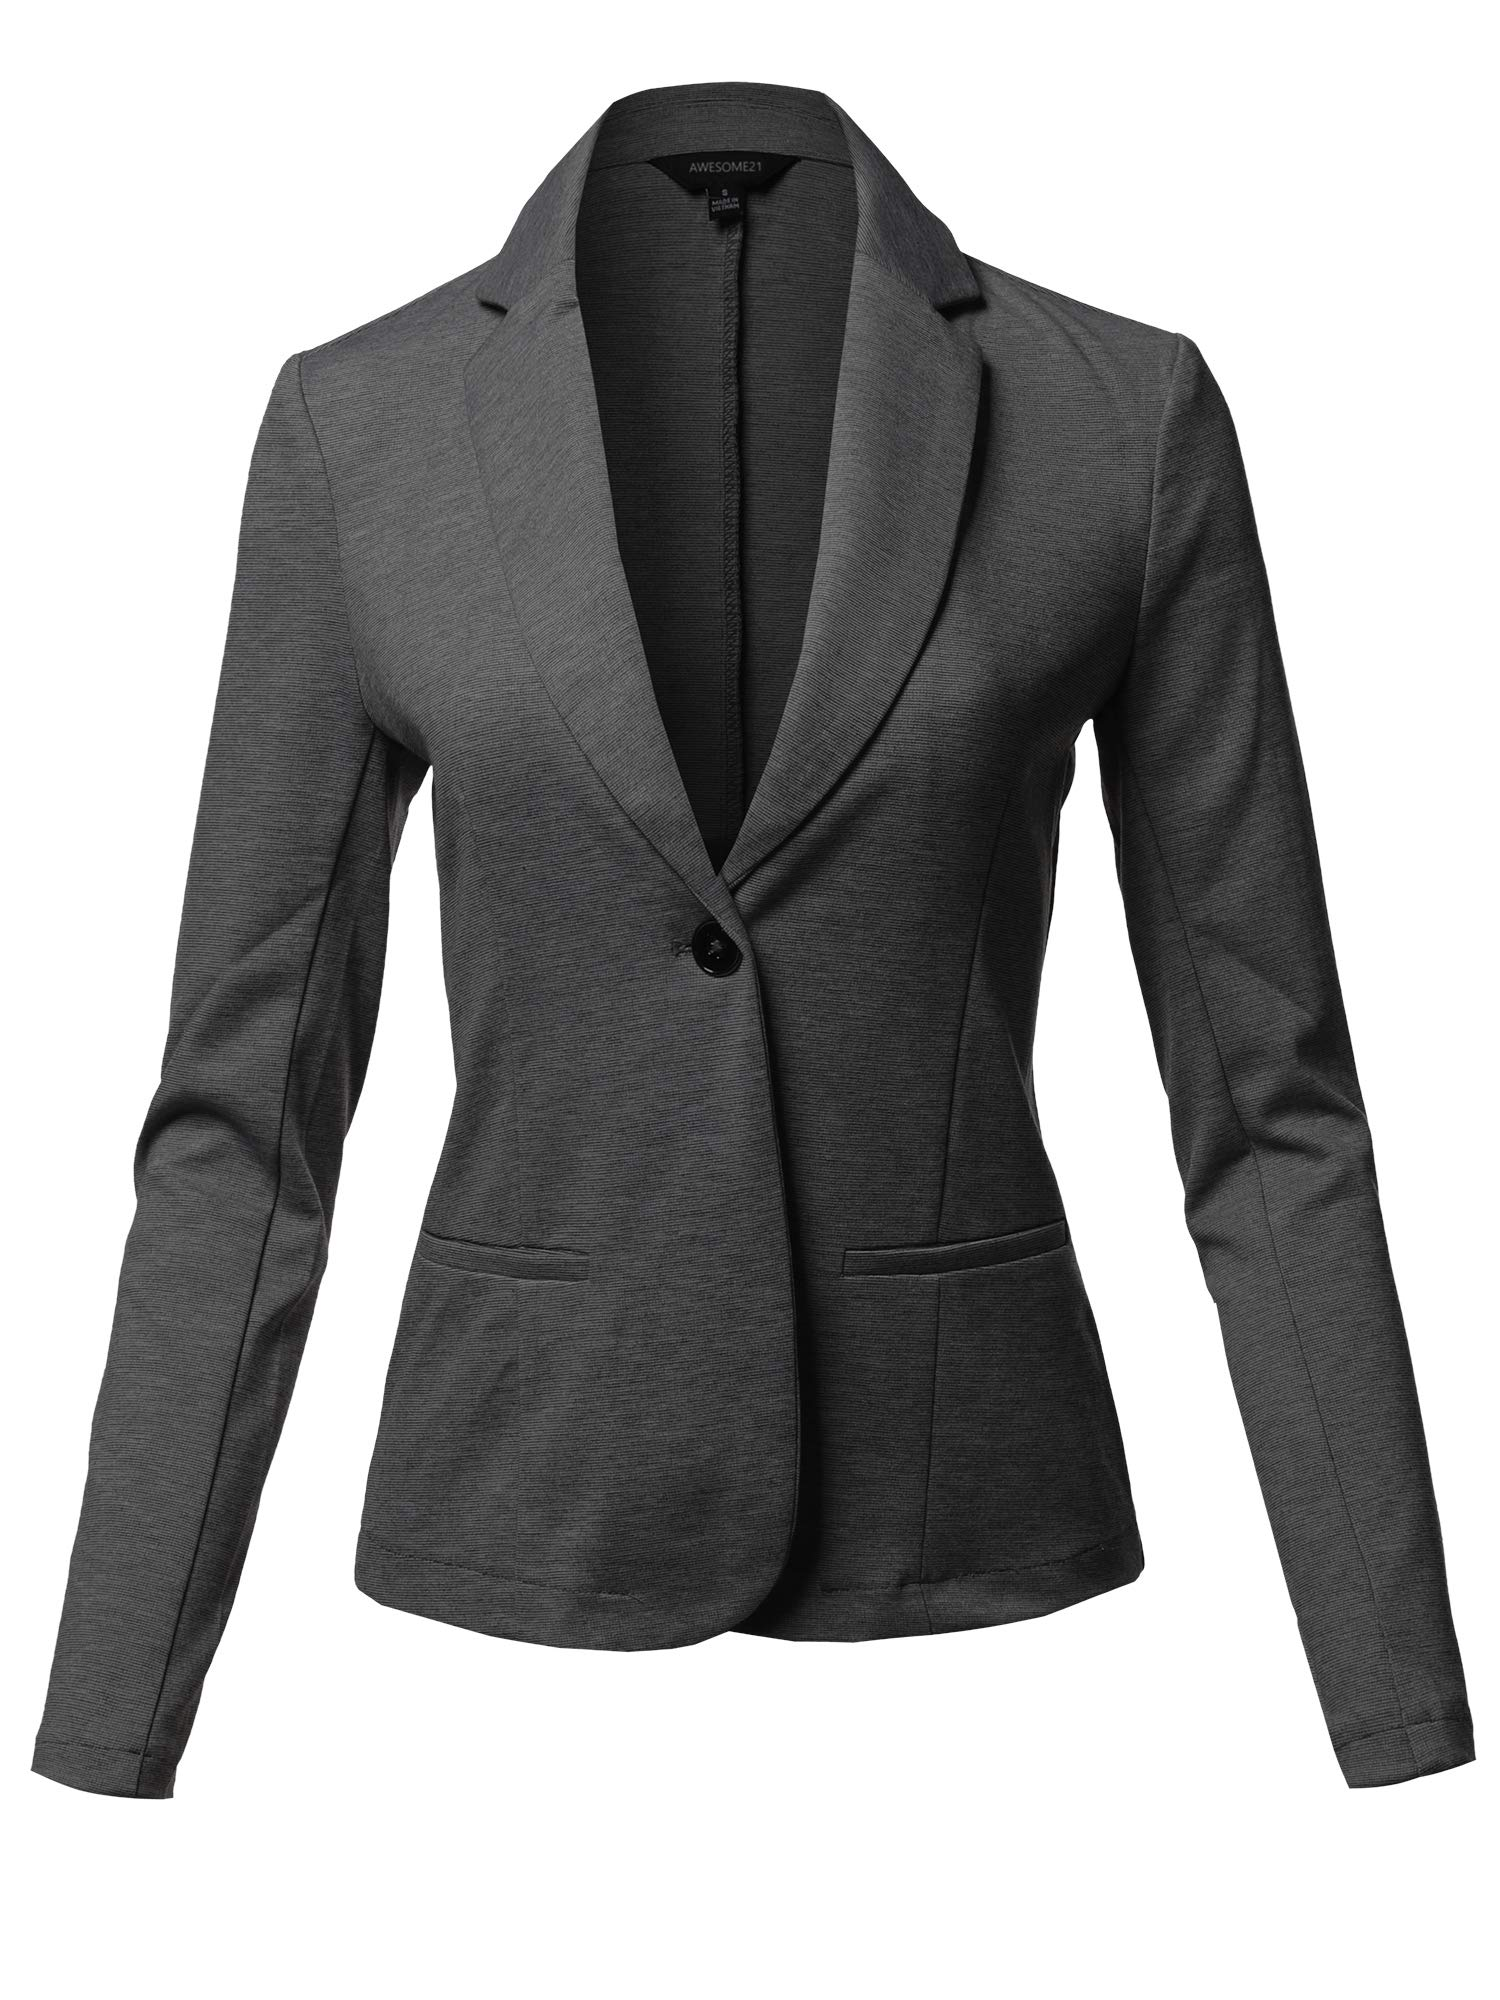 Awesome21 Solid Formal Single Button up Long Sleeve Blazer Jacket Heather Charcoal Size L